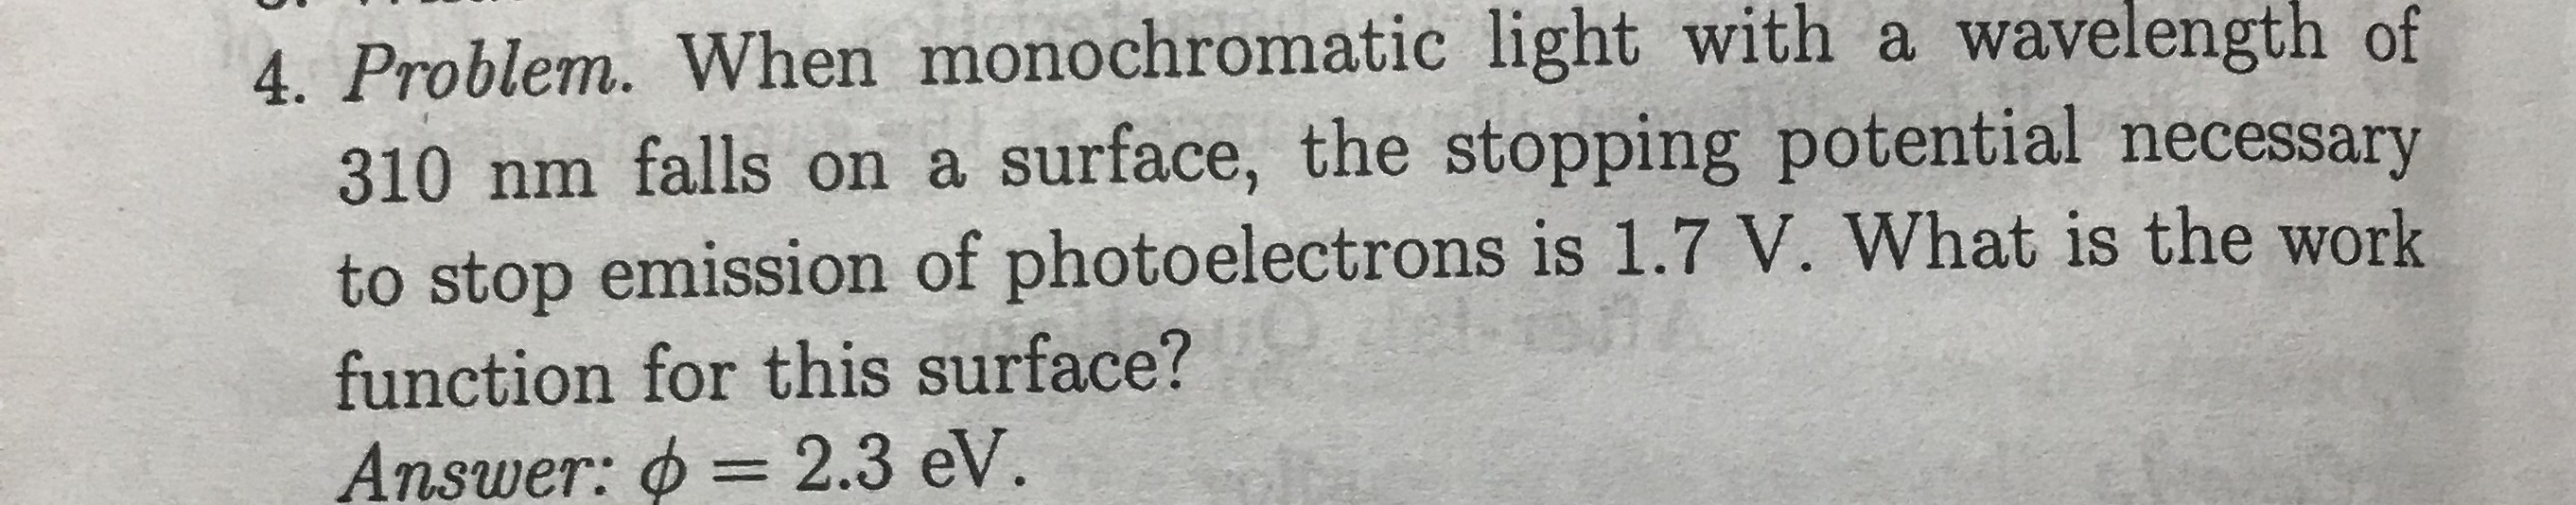 4. Problem. When monochromatic light with a wavelength of 310 nm falls on a surface, the stopping potential necessary to stop emission of photoelectrons is 1.7 V. What is the work function for this surface? = 2.3 eV. Answer: %3D